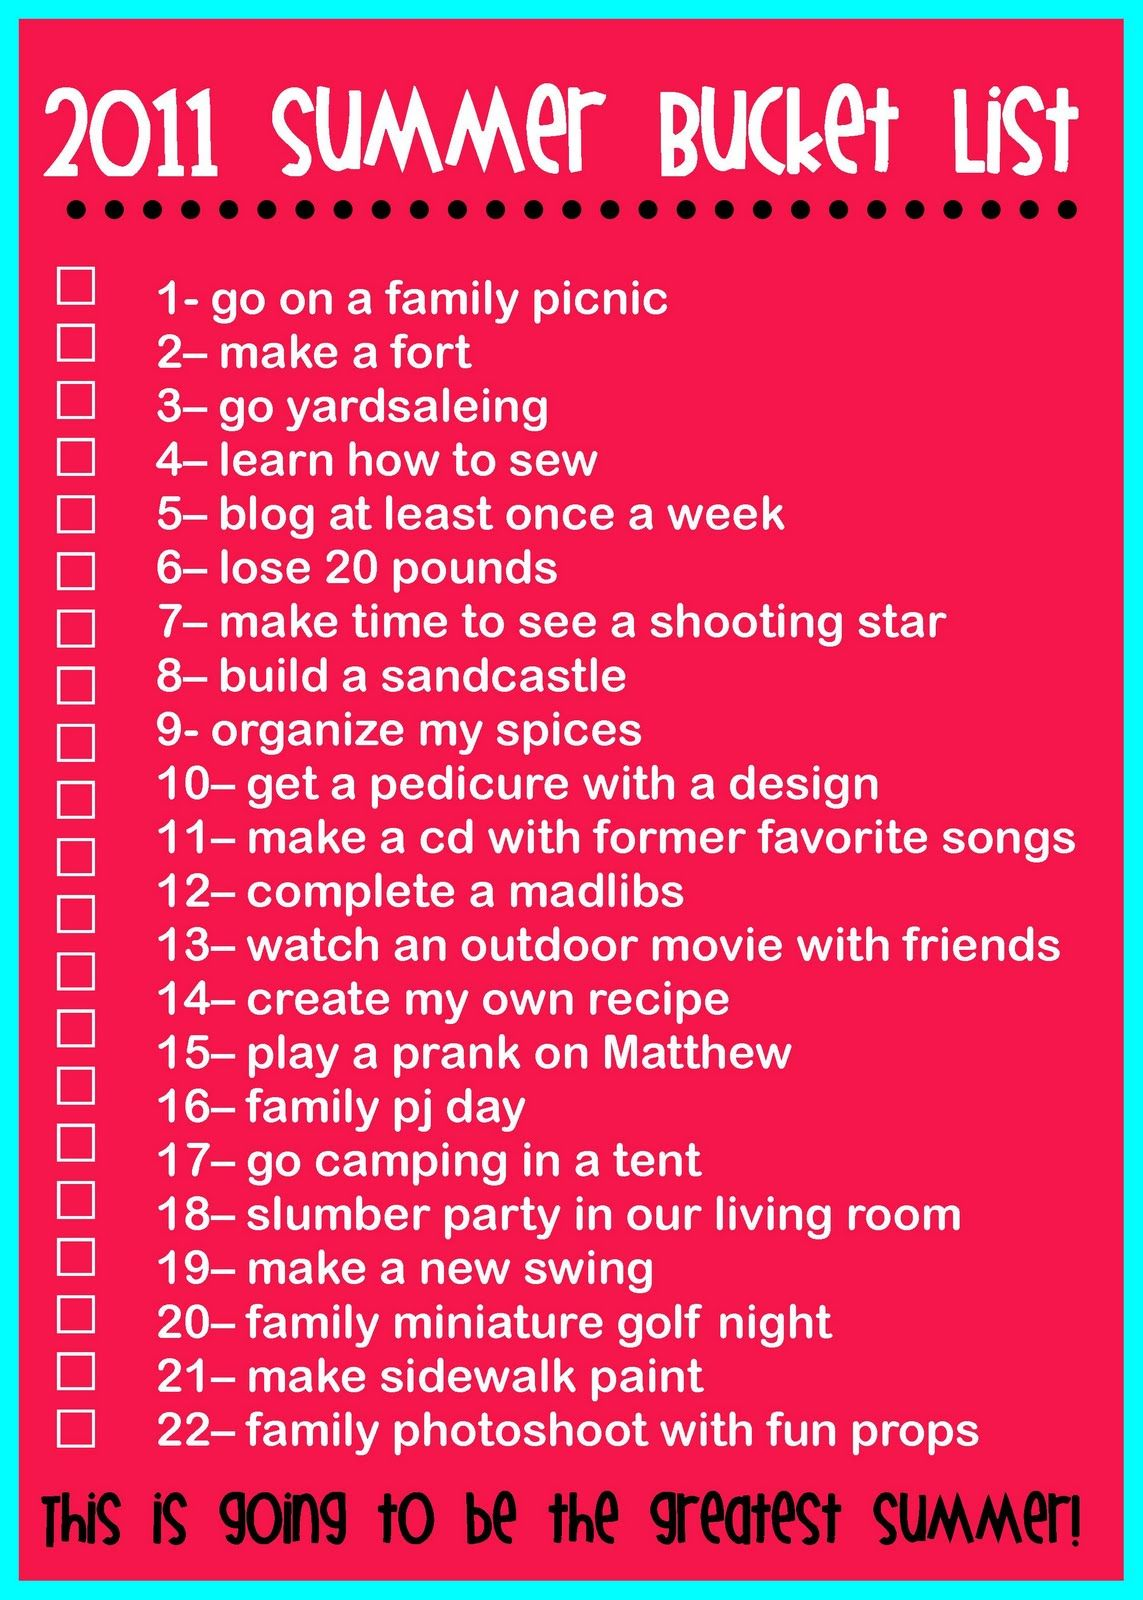 The Rollins Family Summer Bucket List